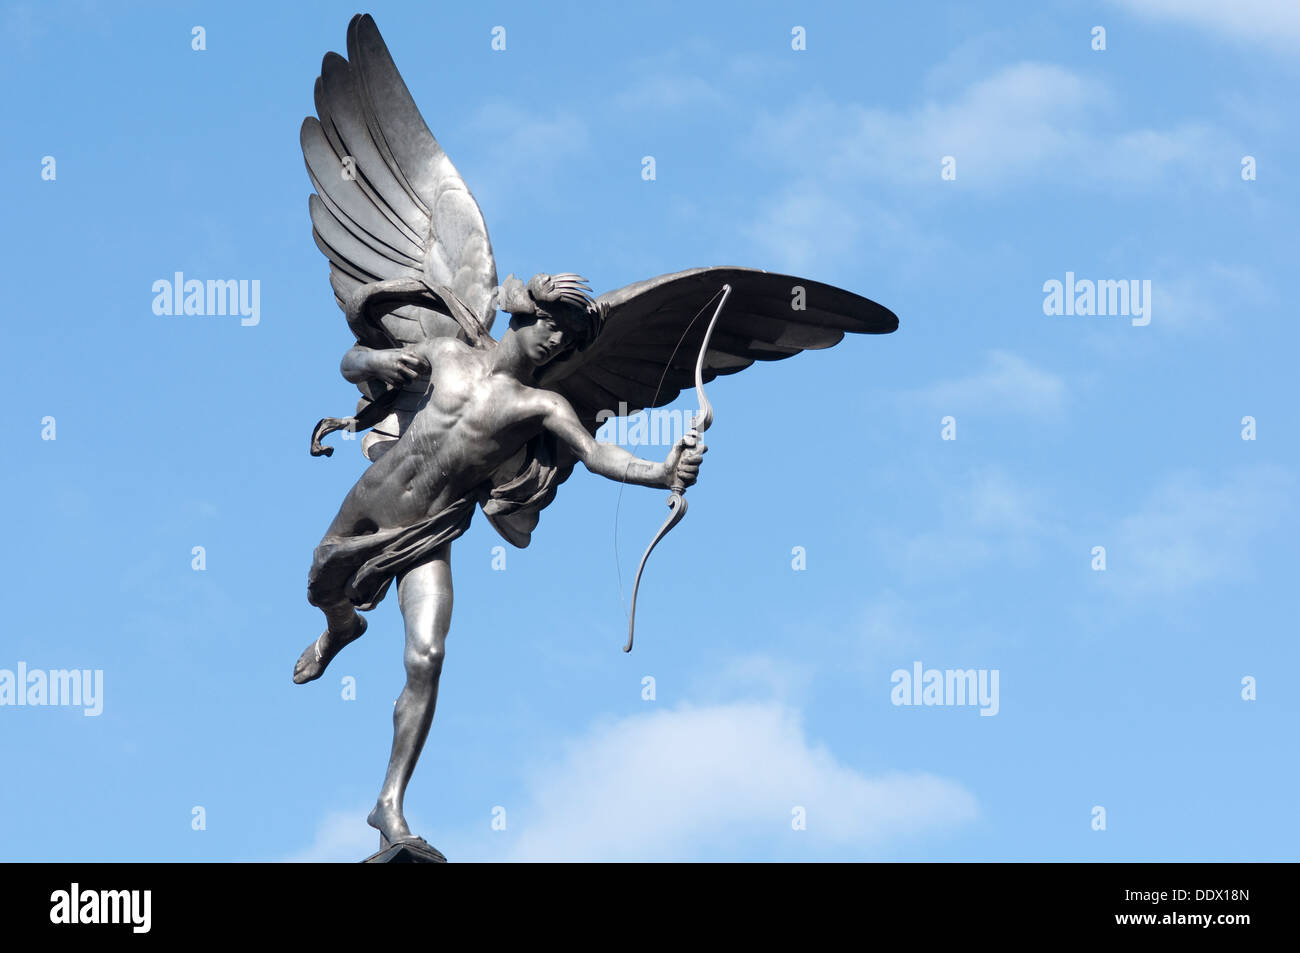 England, London, Piccadilly Circus, Shaftesbury Memorial Fountain, Eros Statue by Sir Alfred Gilbert - Stock Image